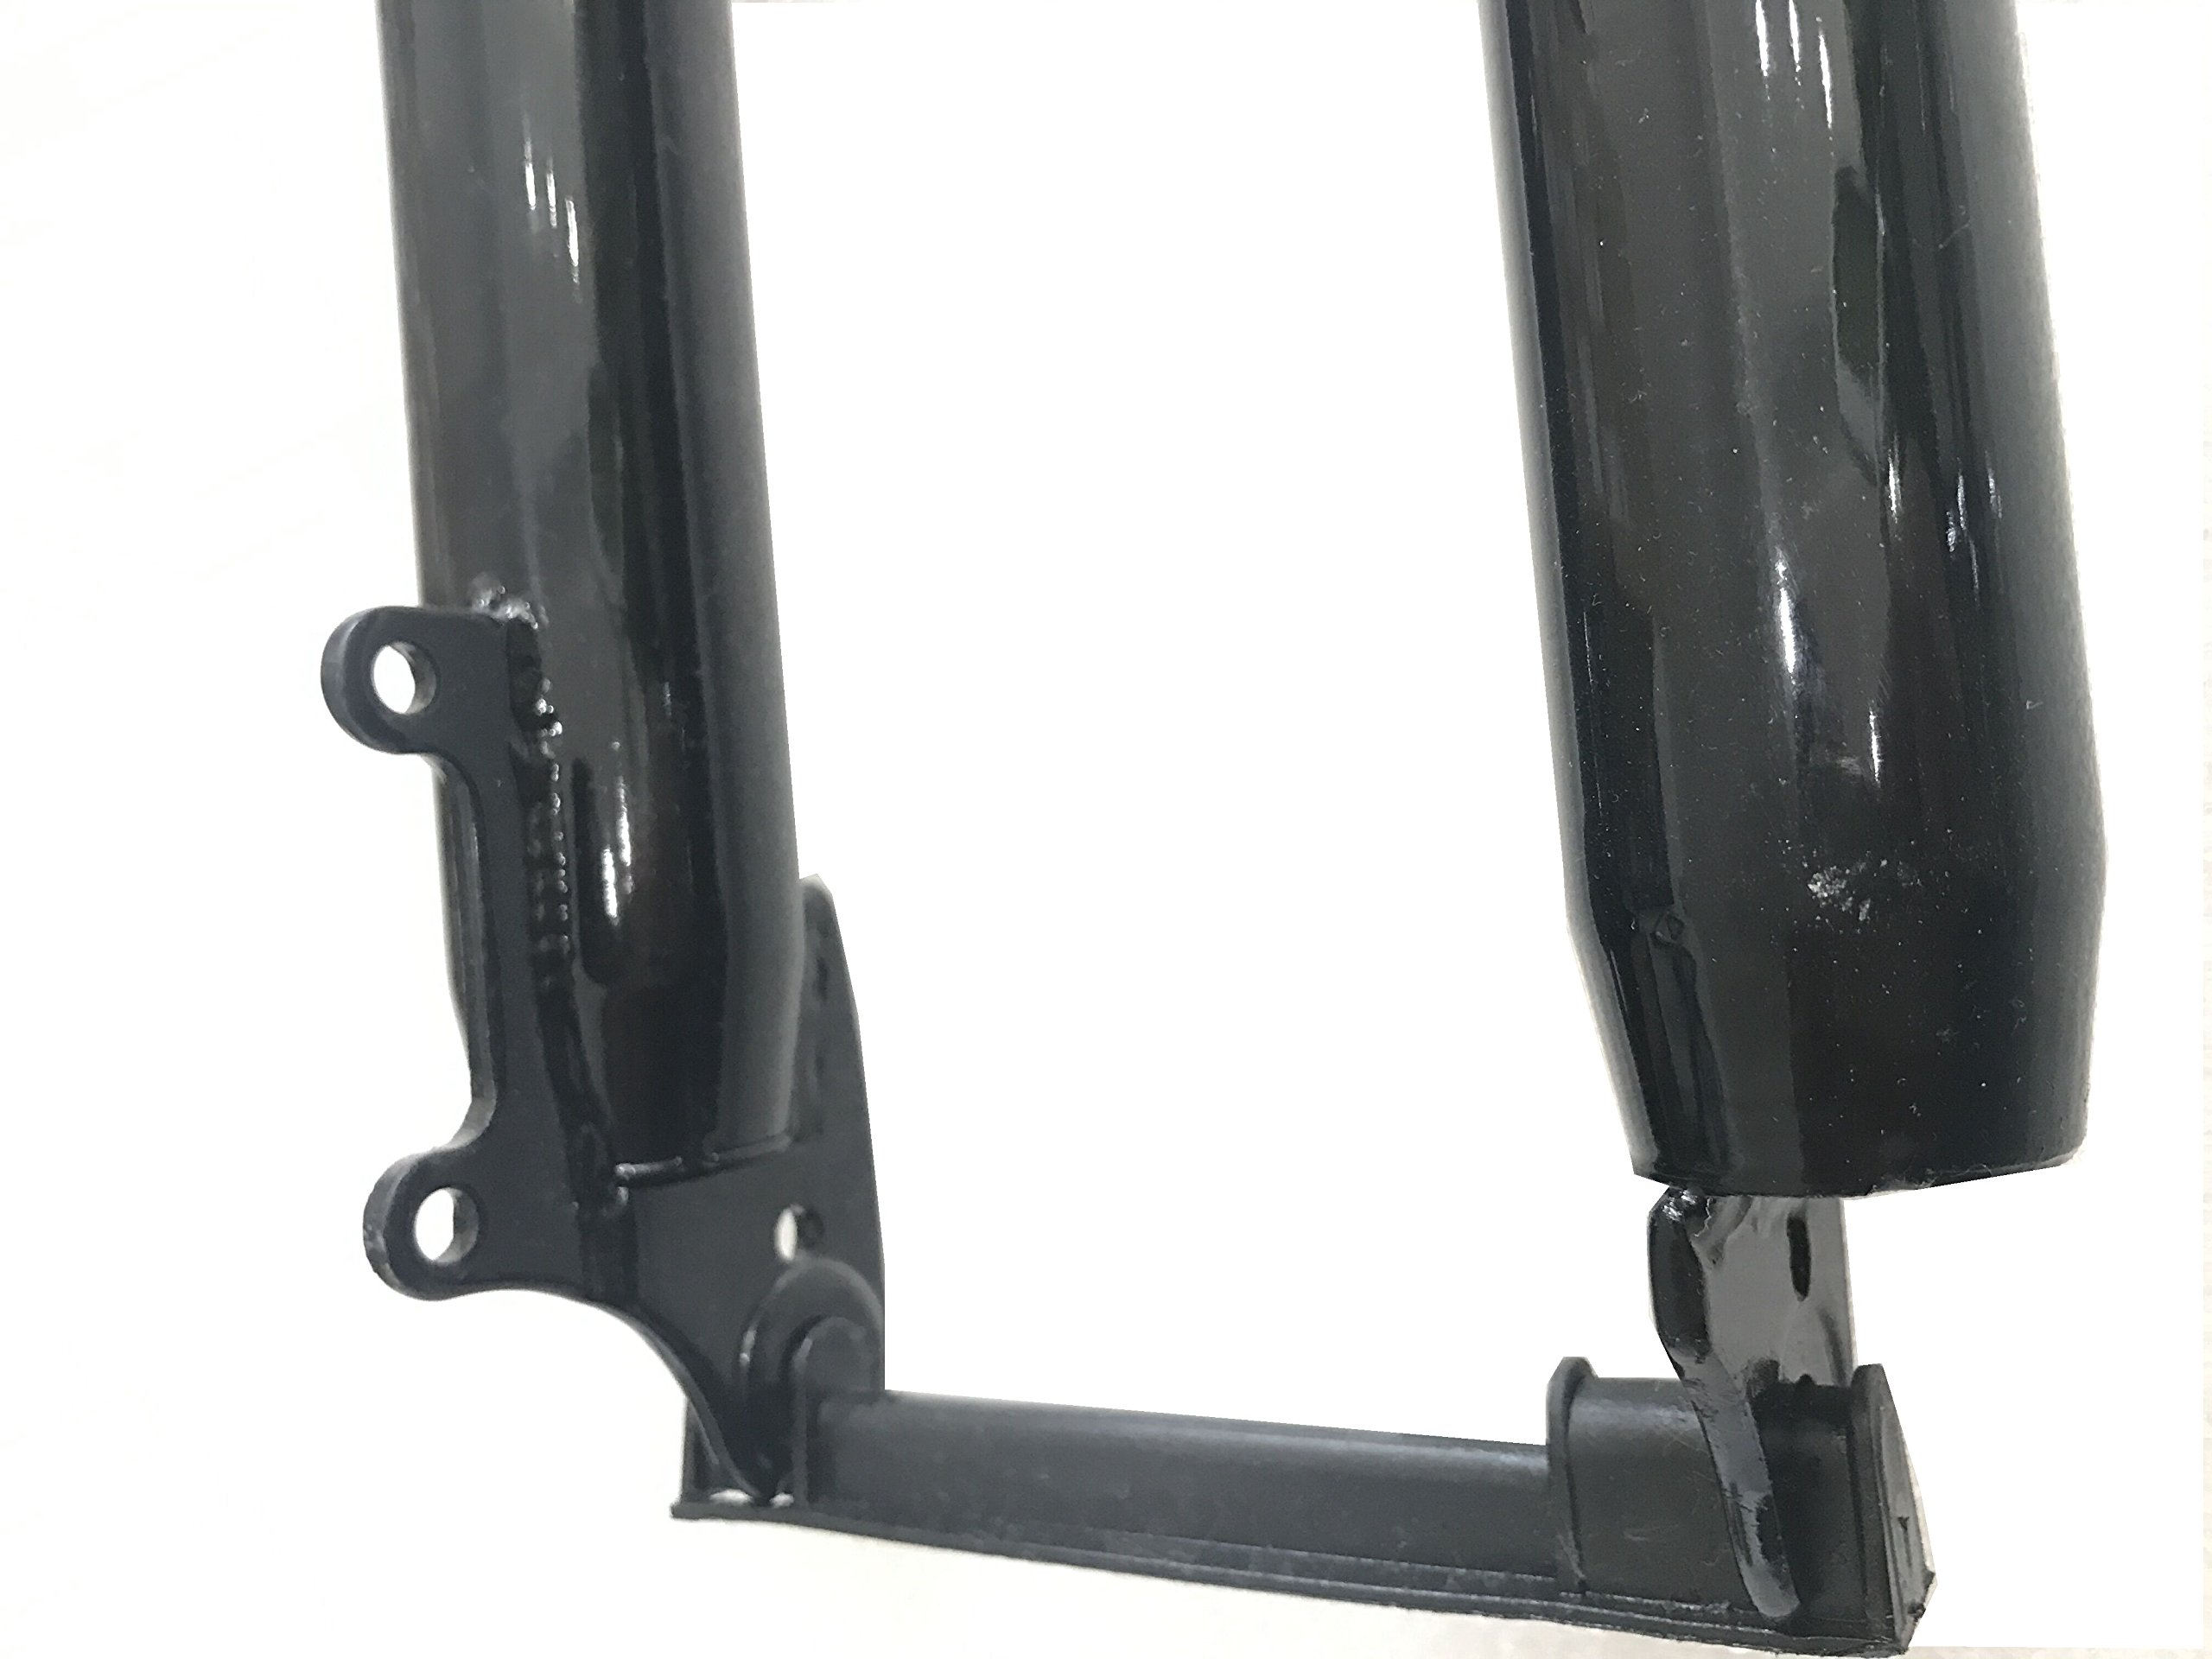 "CDHPOWER Bicycle Black Fork 26"" and 1 1/8"" Headset Combo Triple Tree Suspension Fork w/Double Shoulder Gas Motorized Bike"